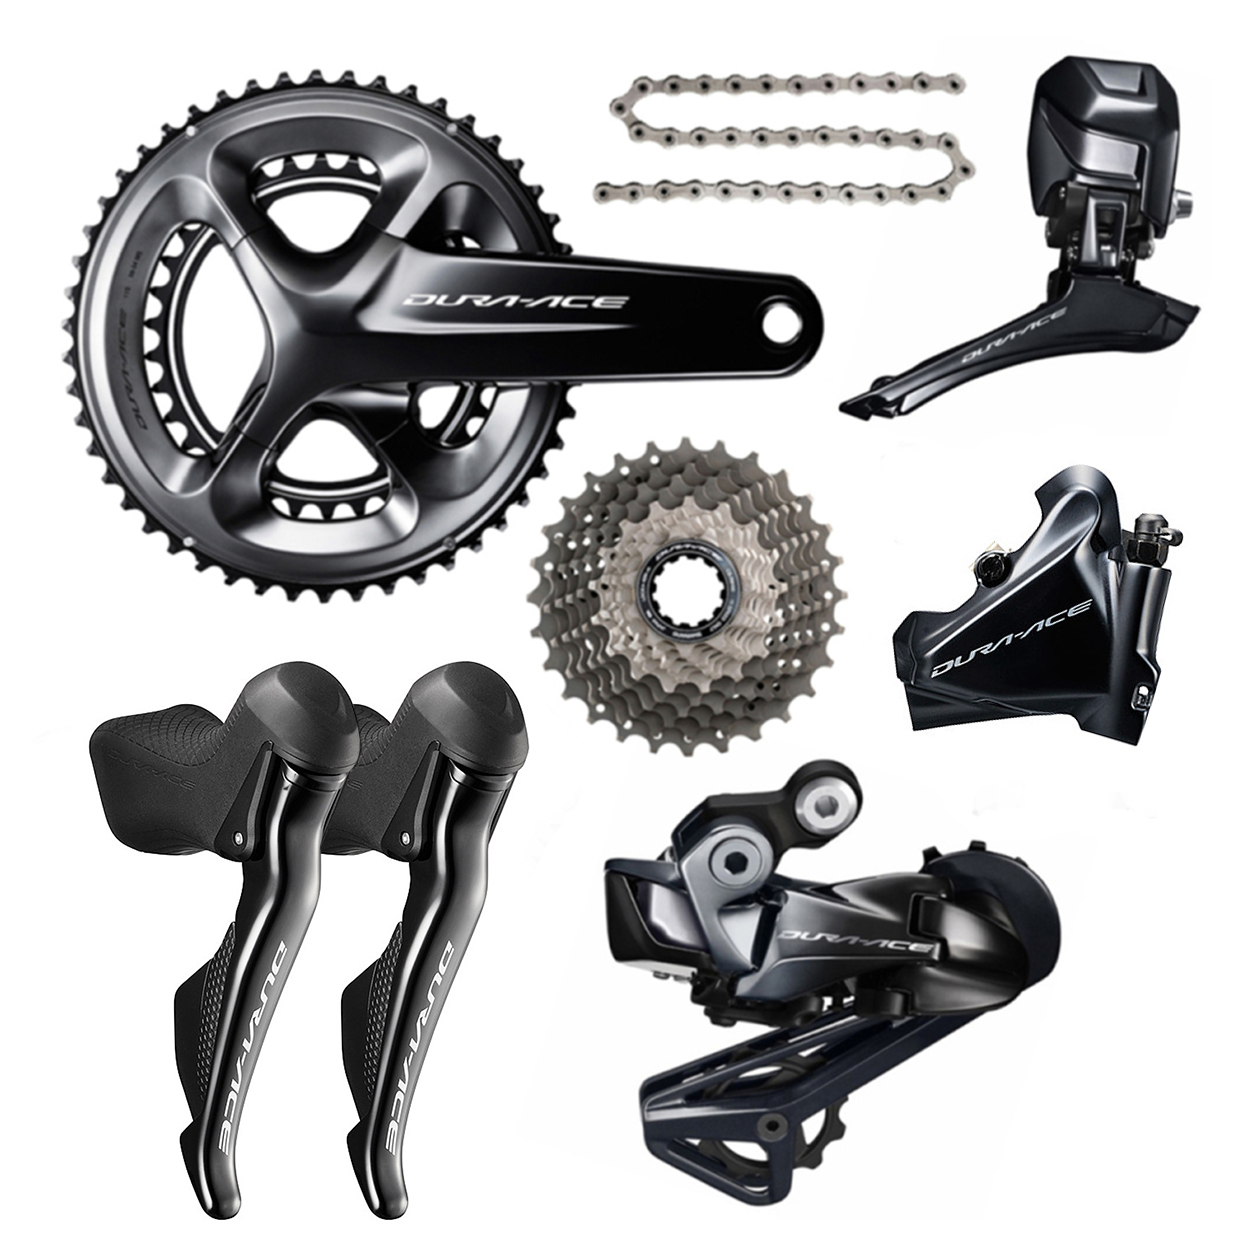 Shimano Dura Ace R9170 Disc Di2 11 Speed Groupset Builder